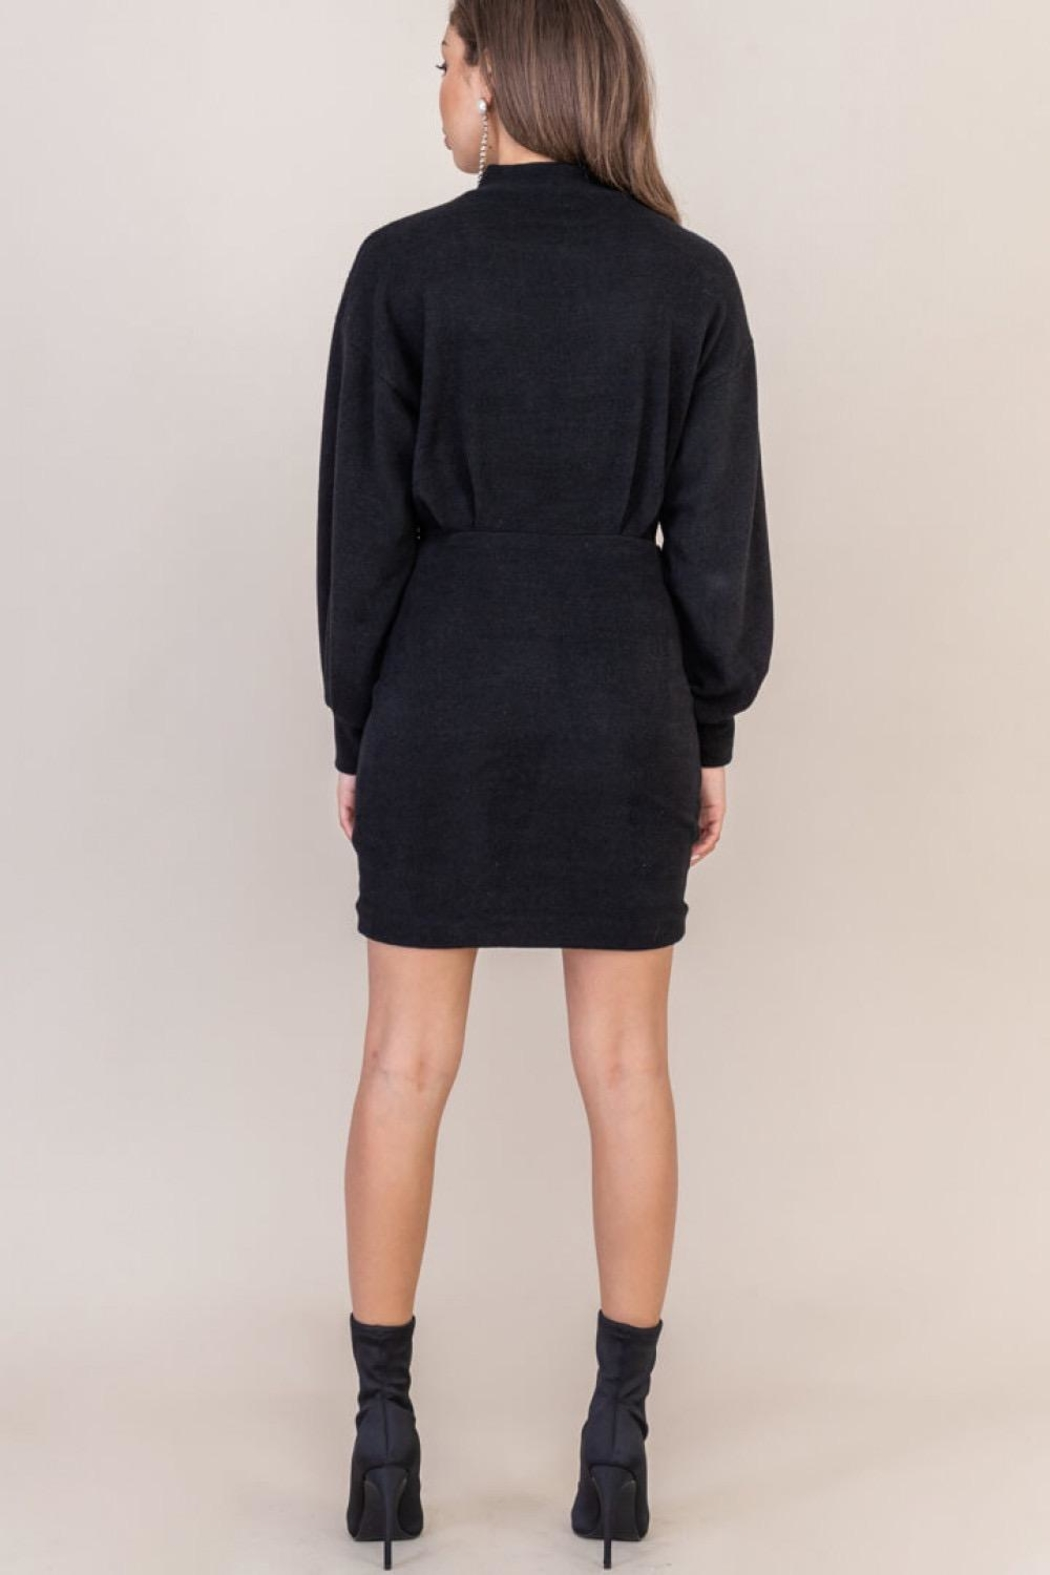 Lush Clothing  Black Sweater Dress - Back Cropped Image